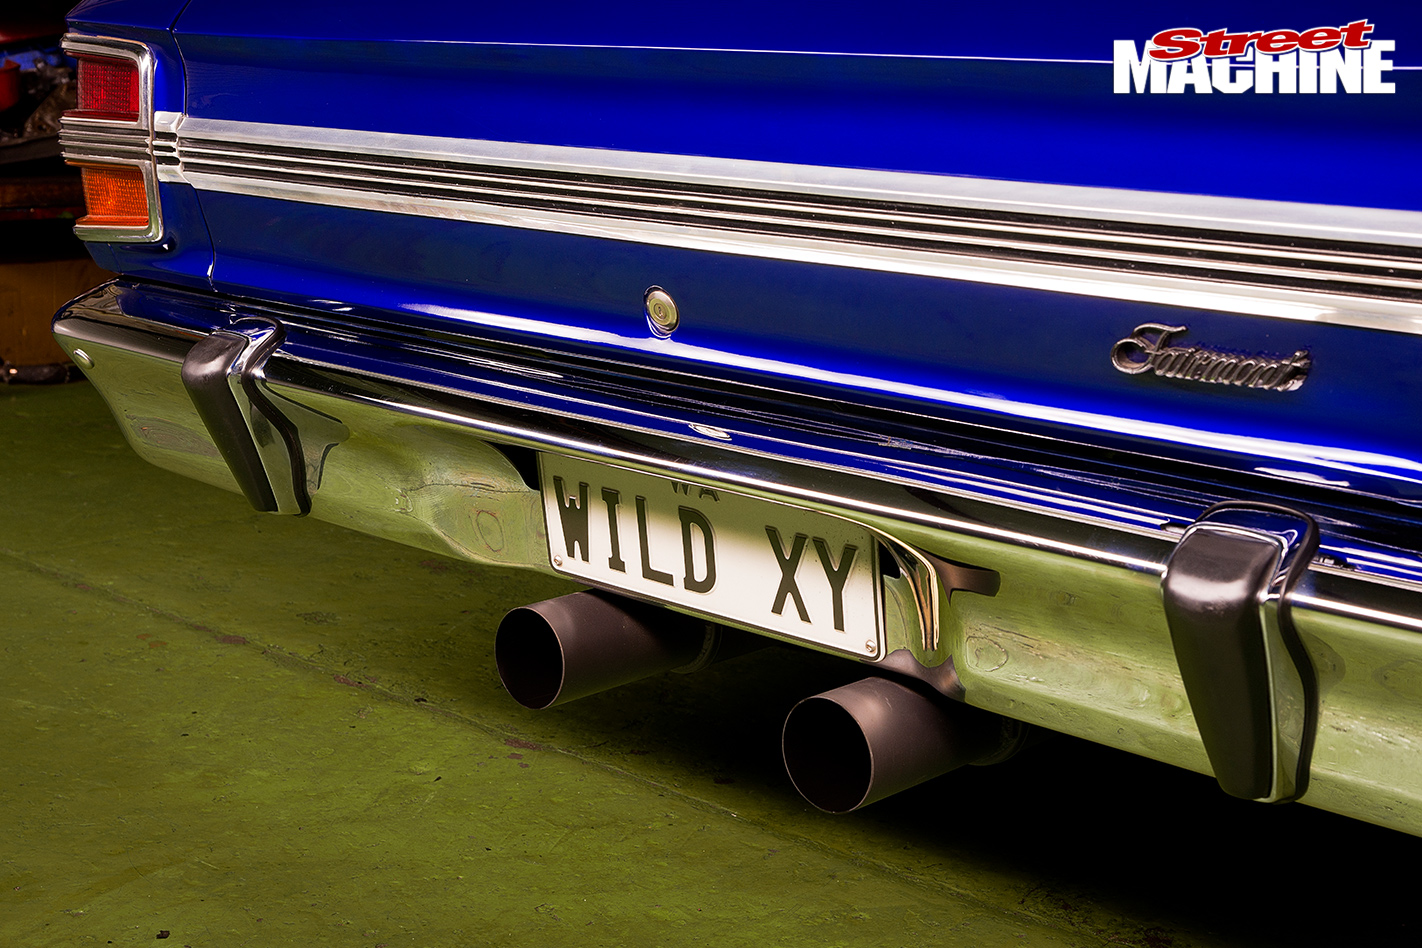 FORD-XY-FAIRMONT-SEDAN-exhaust